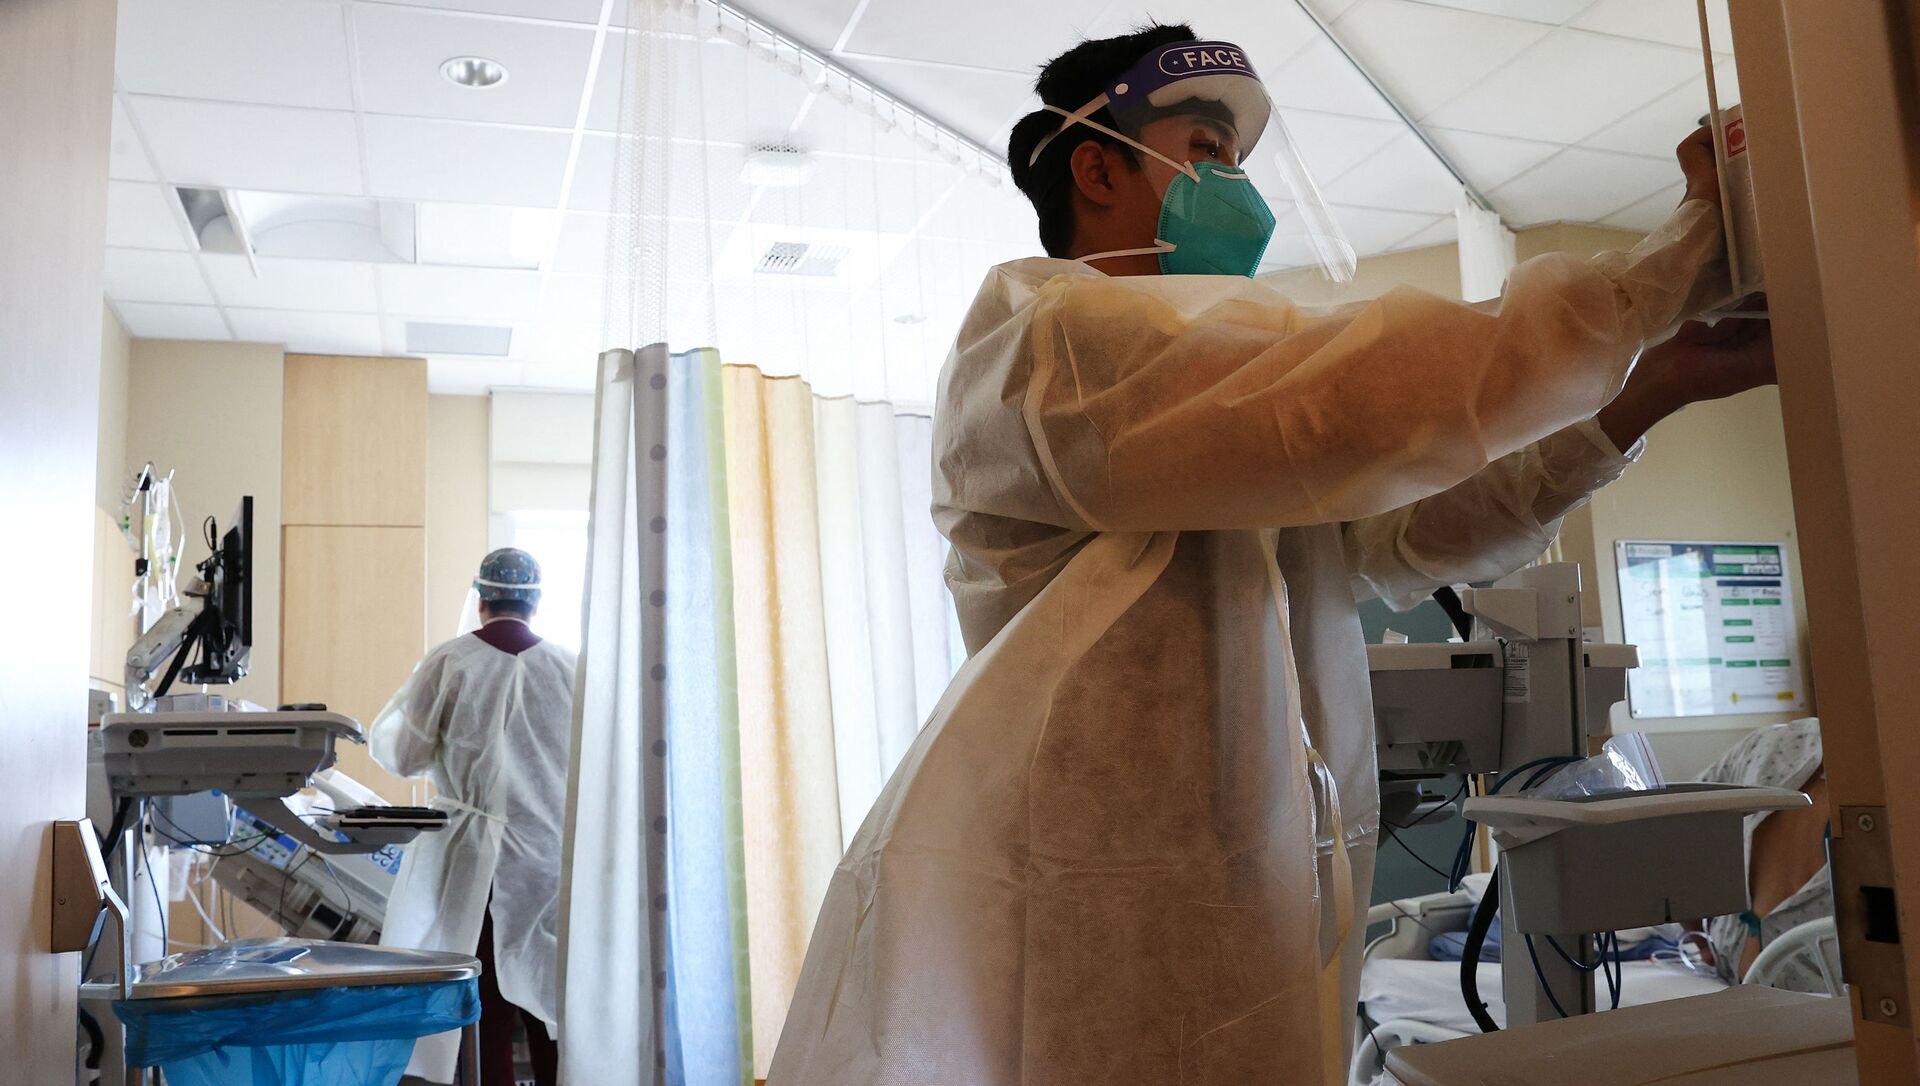 Clinicians work while caring for COVID-19 patients in the improvised COVID-19 unit at Providence Holy Cross Medical Center in the Mission Hills neighborhood on July 30, 2021 in Los Angeles, California. - Sputnik International, 1920, 05.08.2021